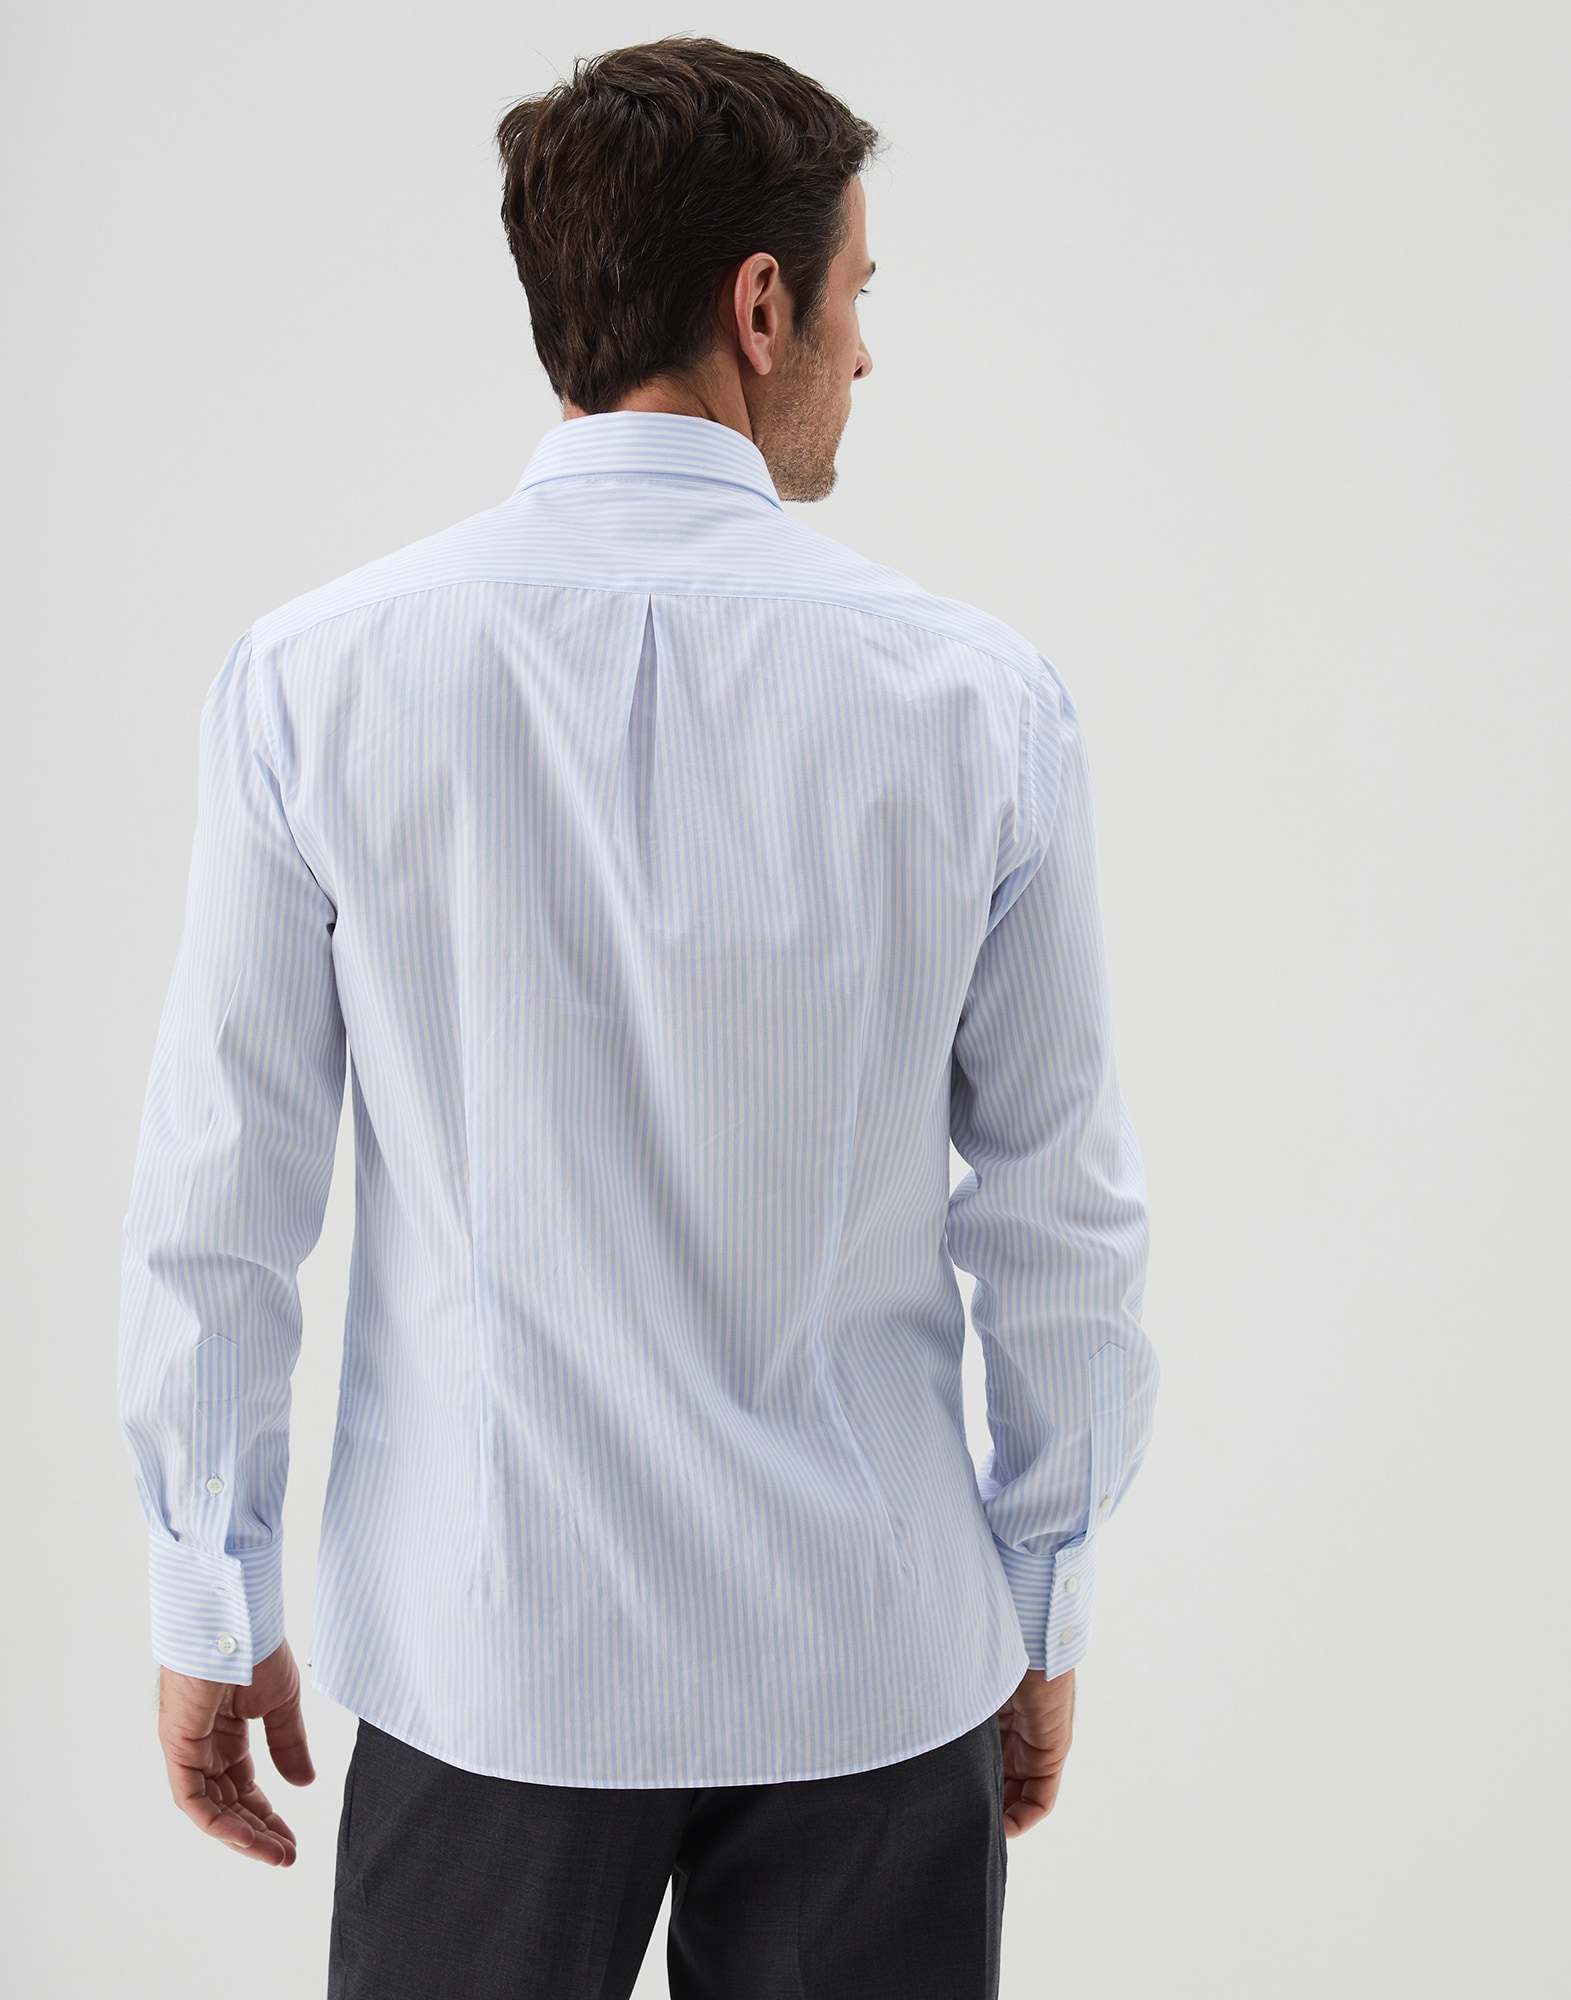 Button Down Shirt - Back view